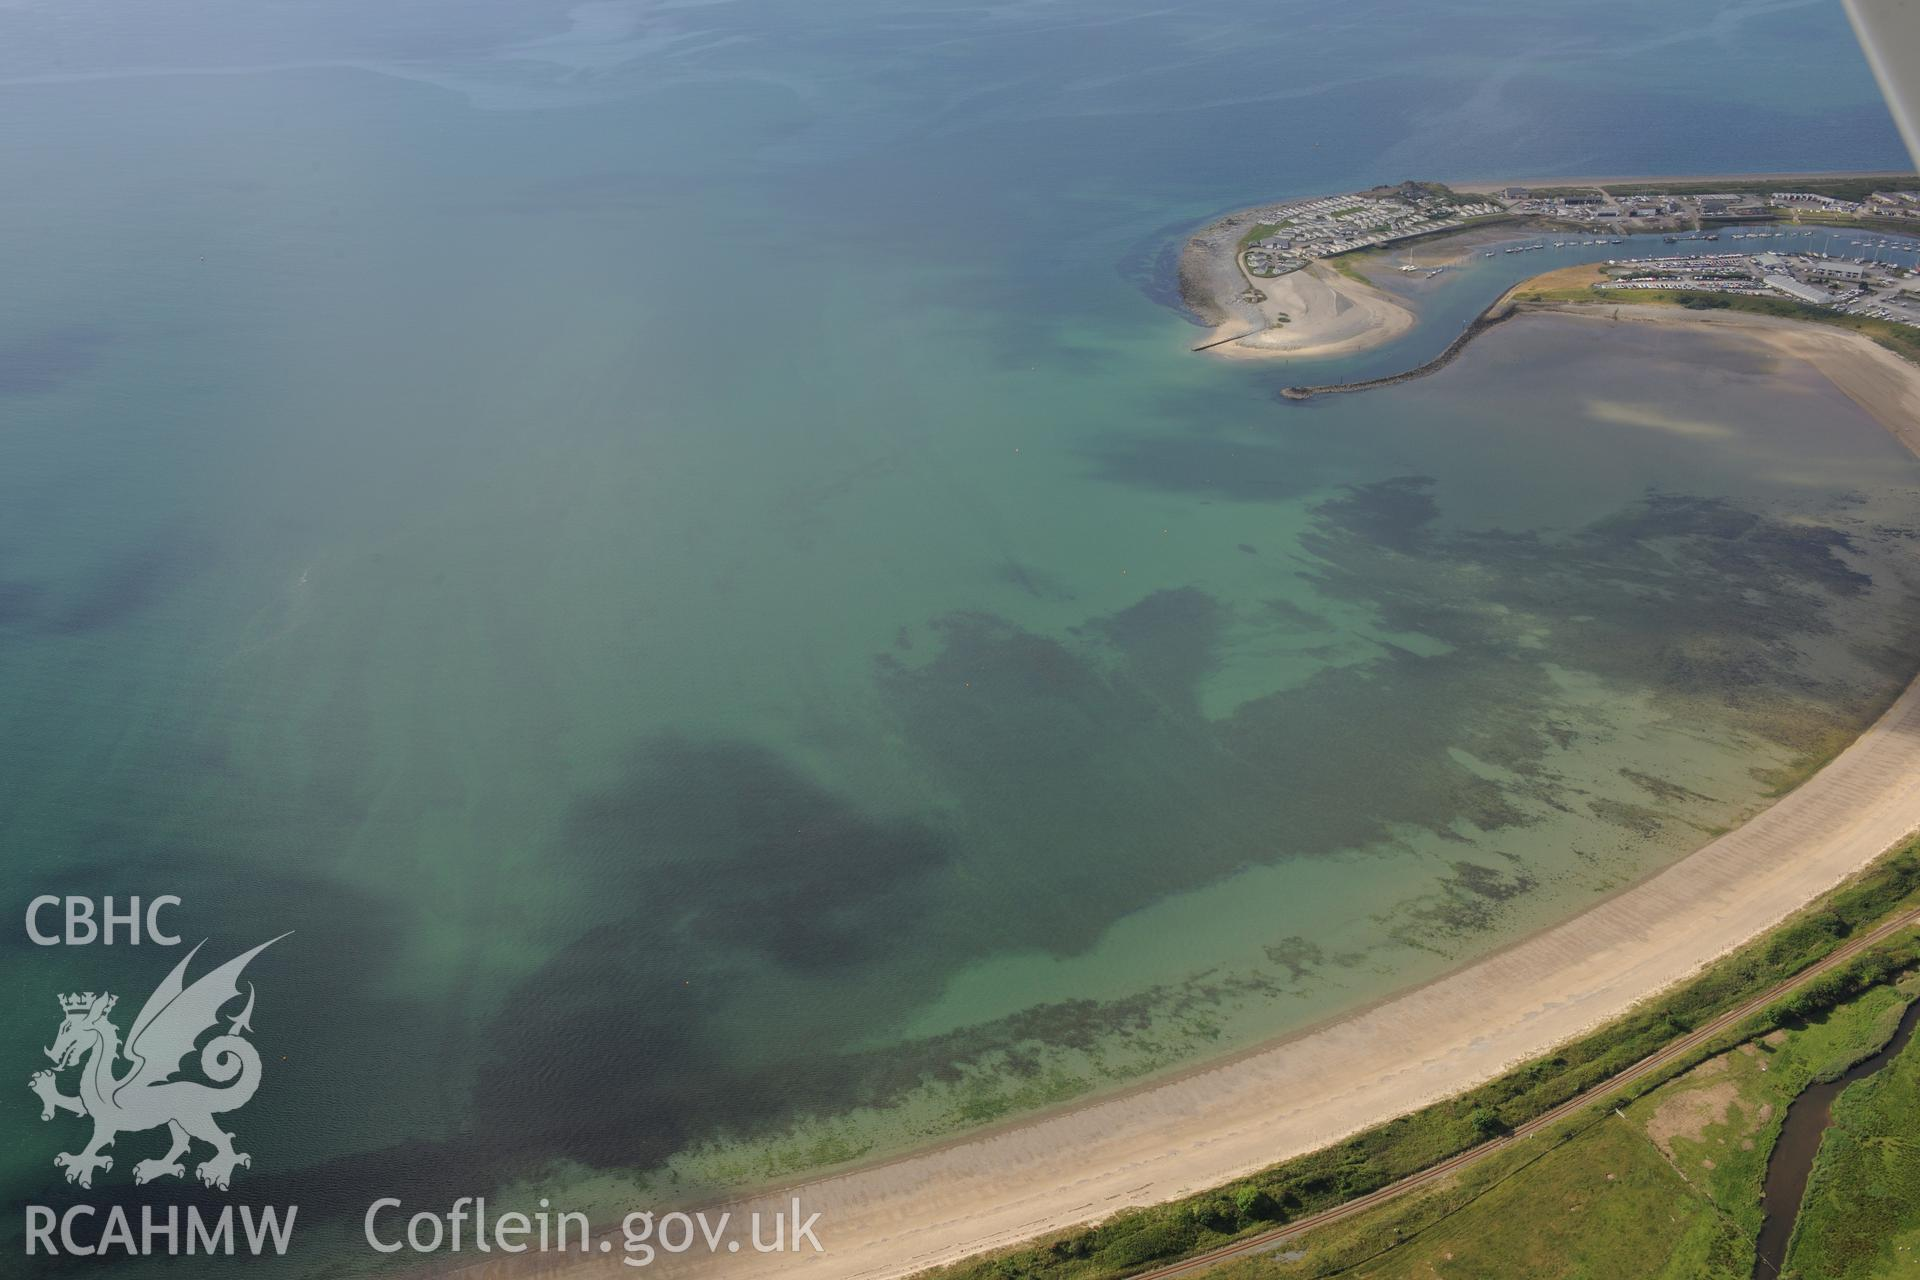 Pwllheli harbour and town. Oblique aerial photograph taken during the Royal Commission's programme of archaeological aerial reconnaissance by Toby Driver on 23rd June 2015.